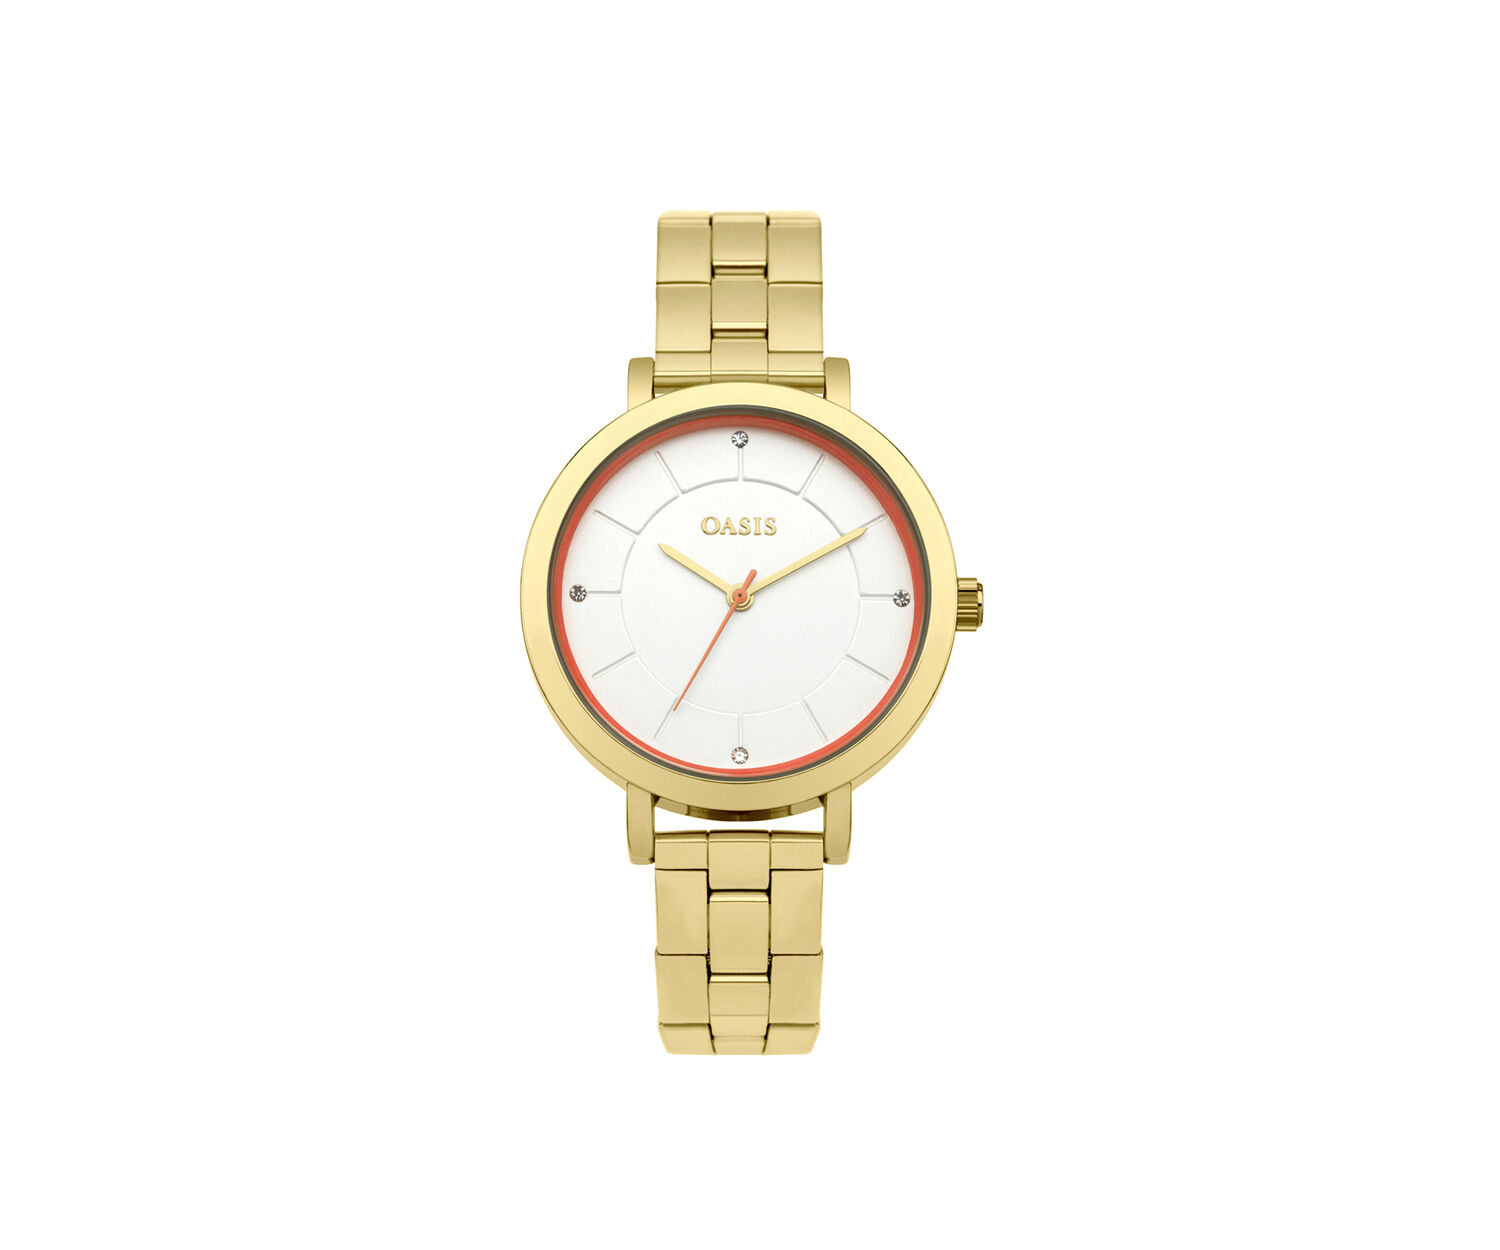 Oasis, STAINLESS STEEL BRACELET WATCH Gold 1